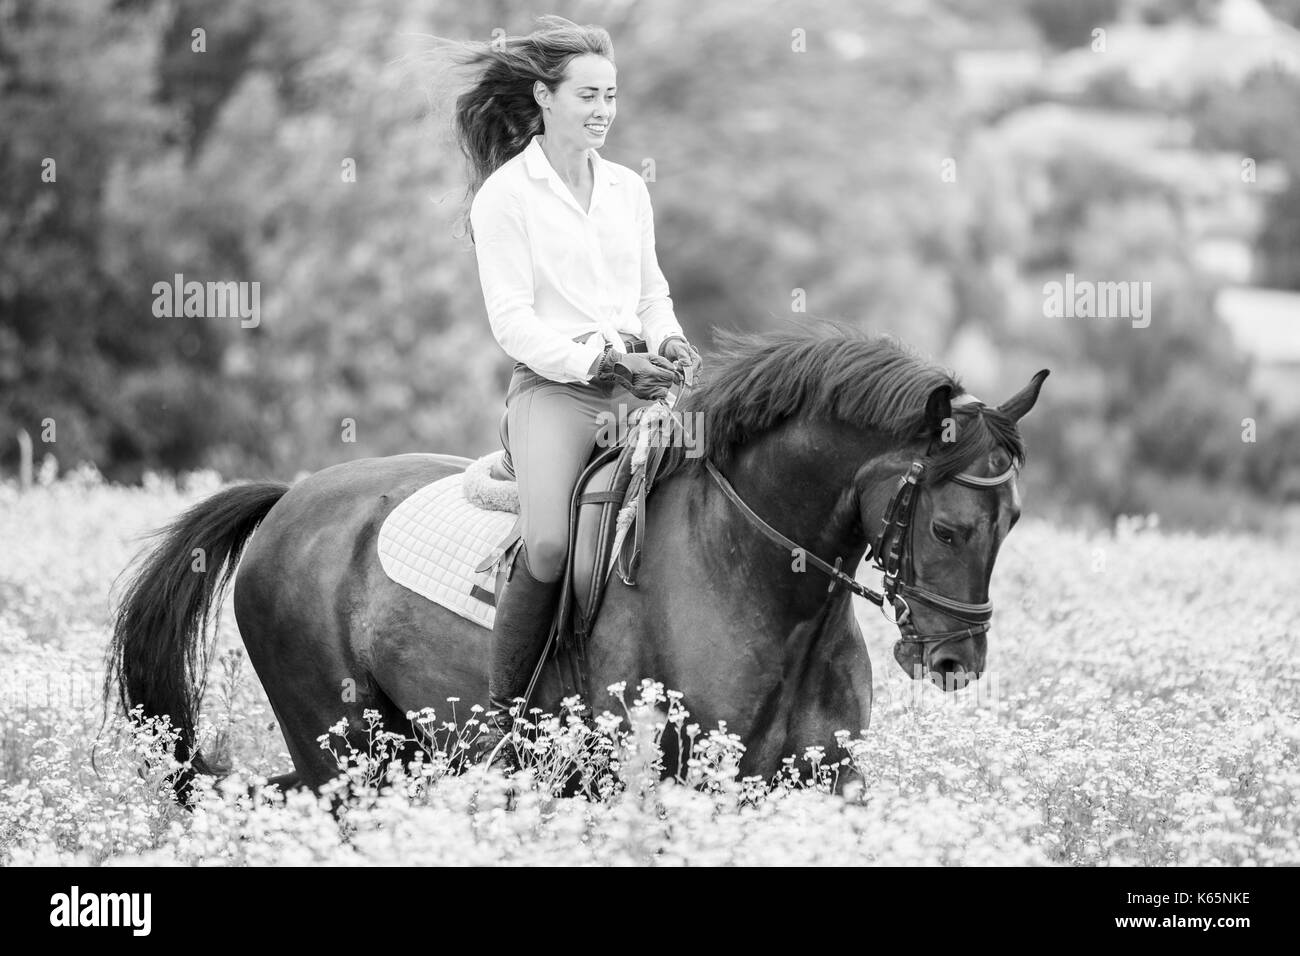 Young rider girl with long hair riding bay horse on camomile field - Stock Image